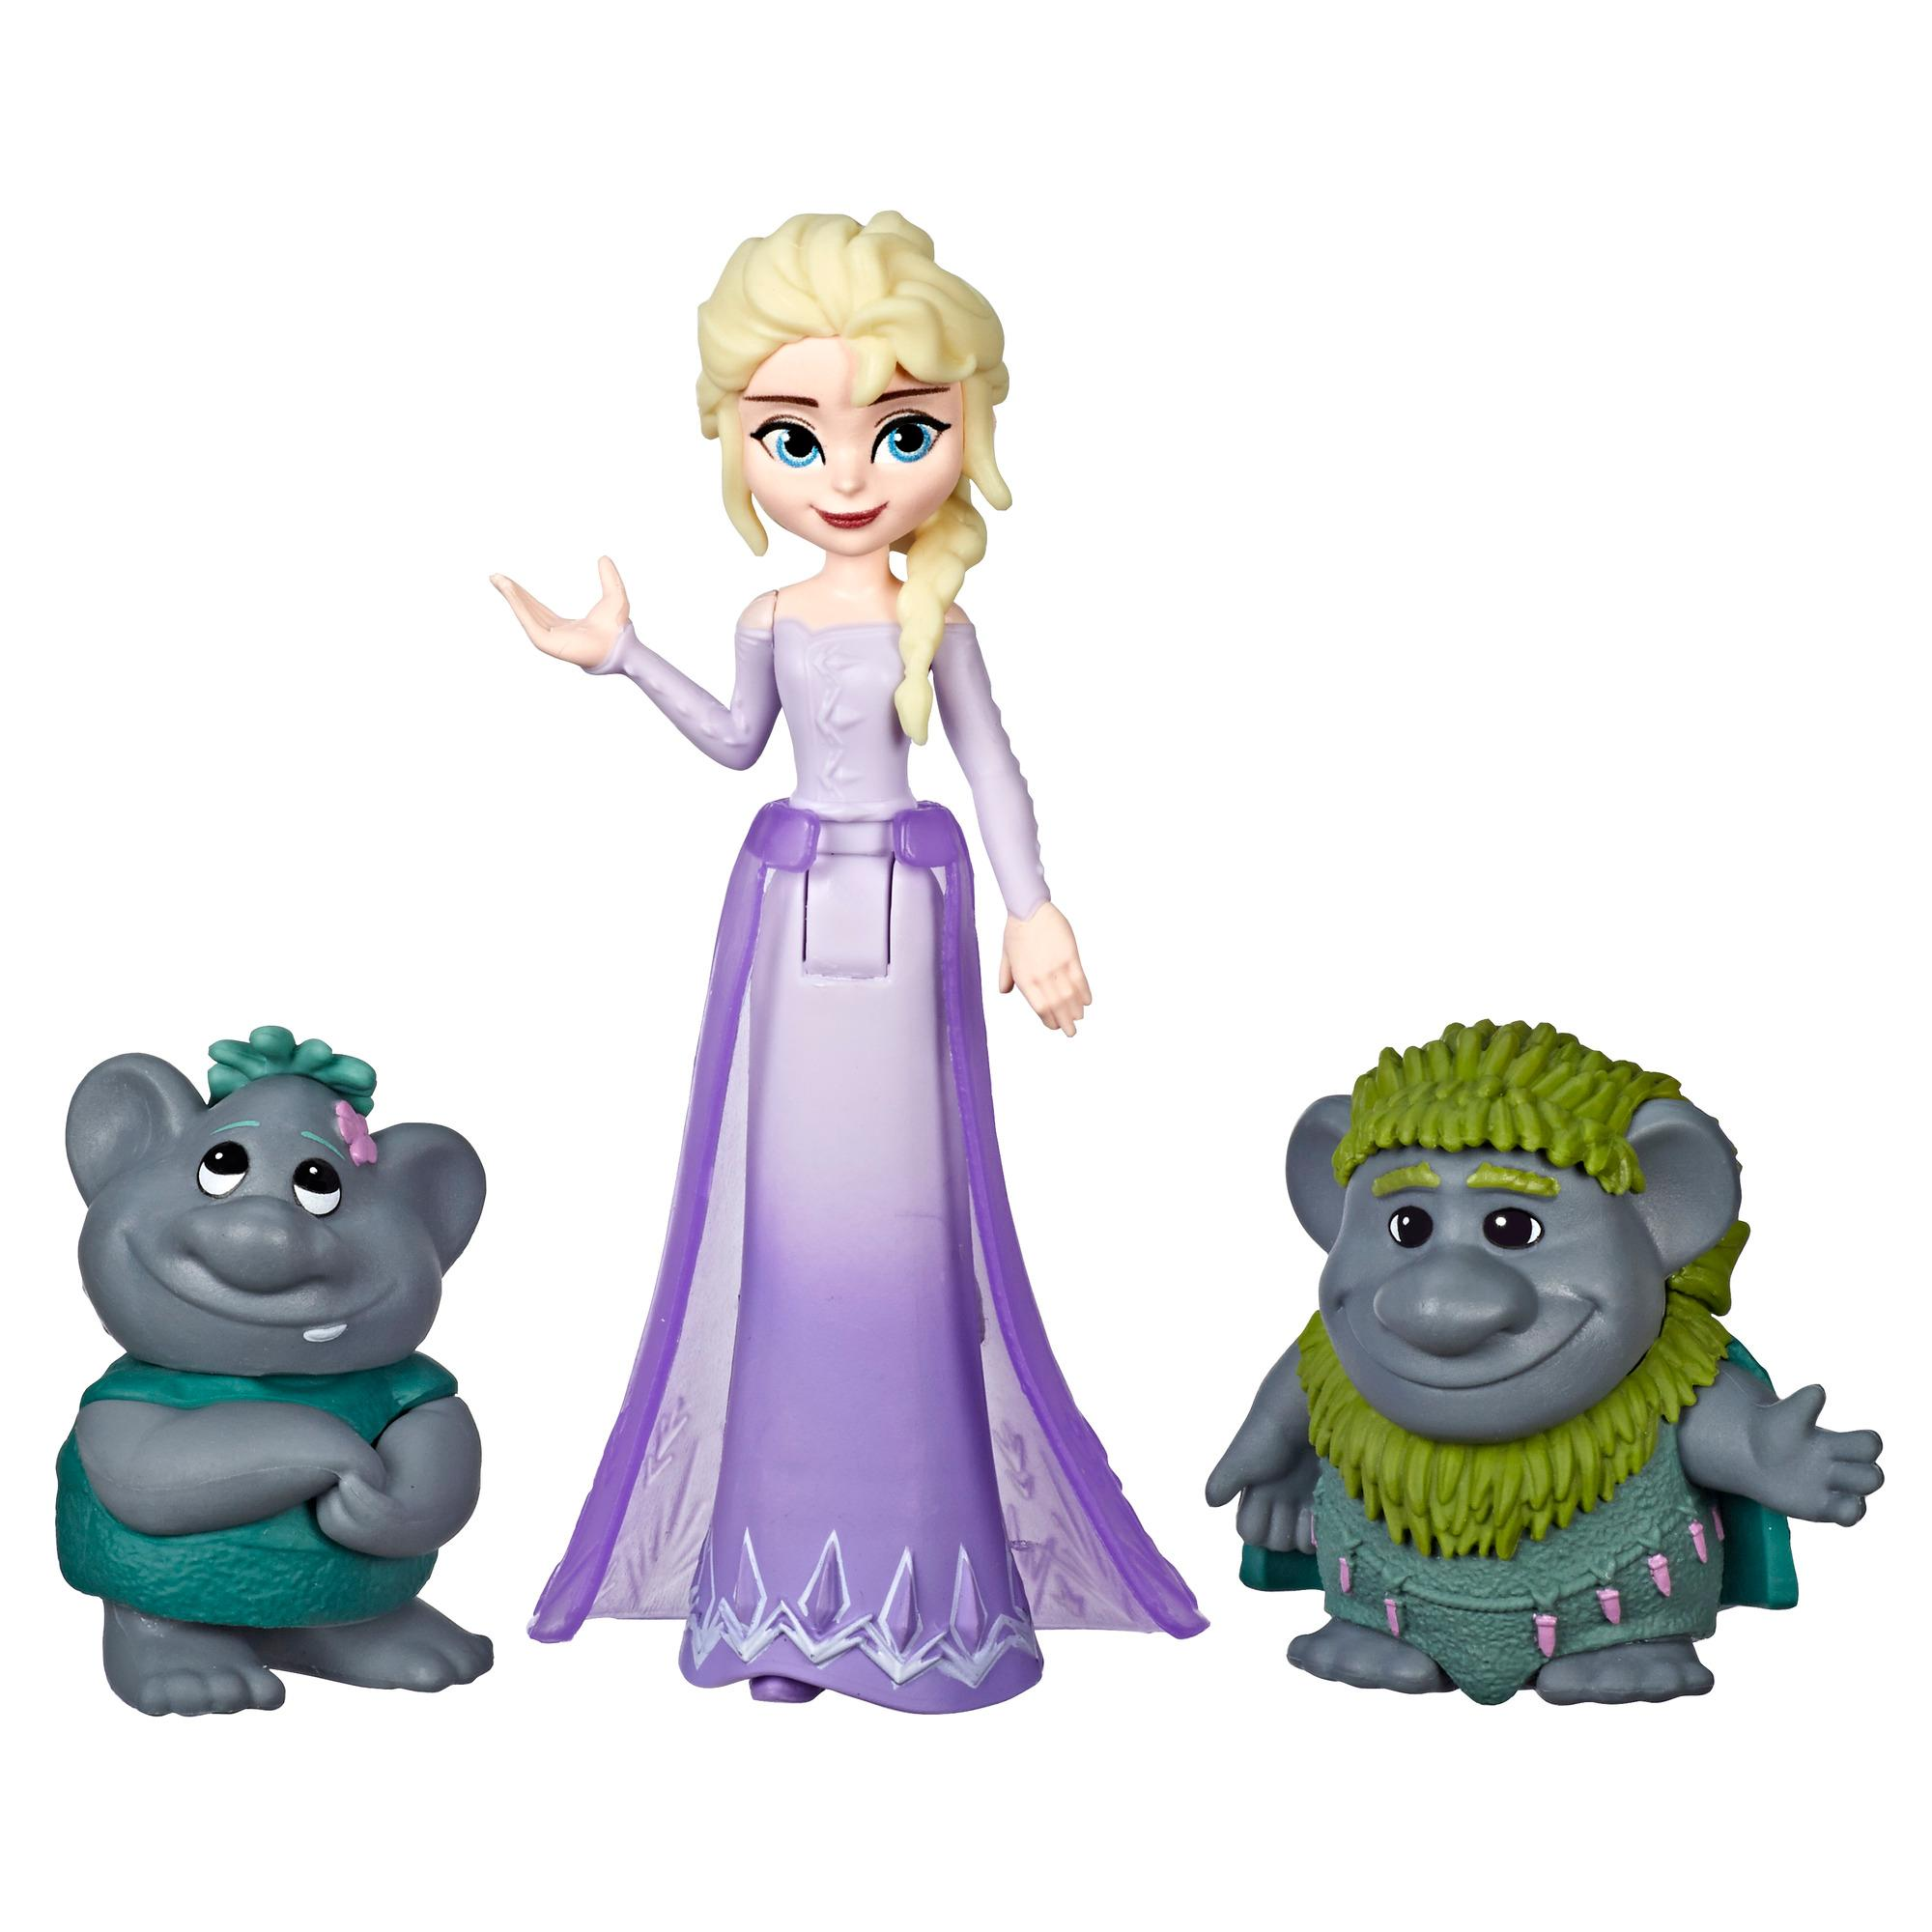 Disney Frozen Elsa Small Doll With Troll Figures Inspired by the Disney Frozen 2 Movie